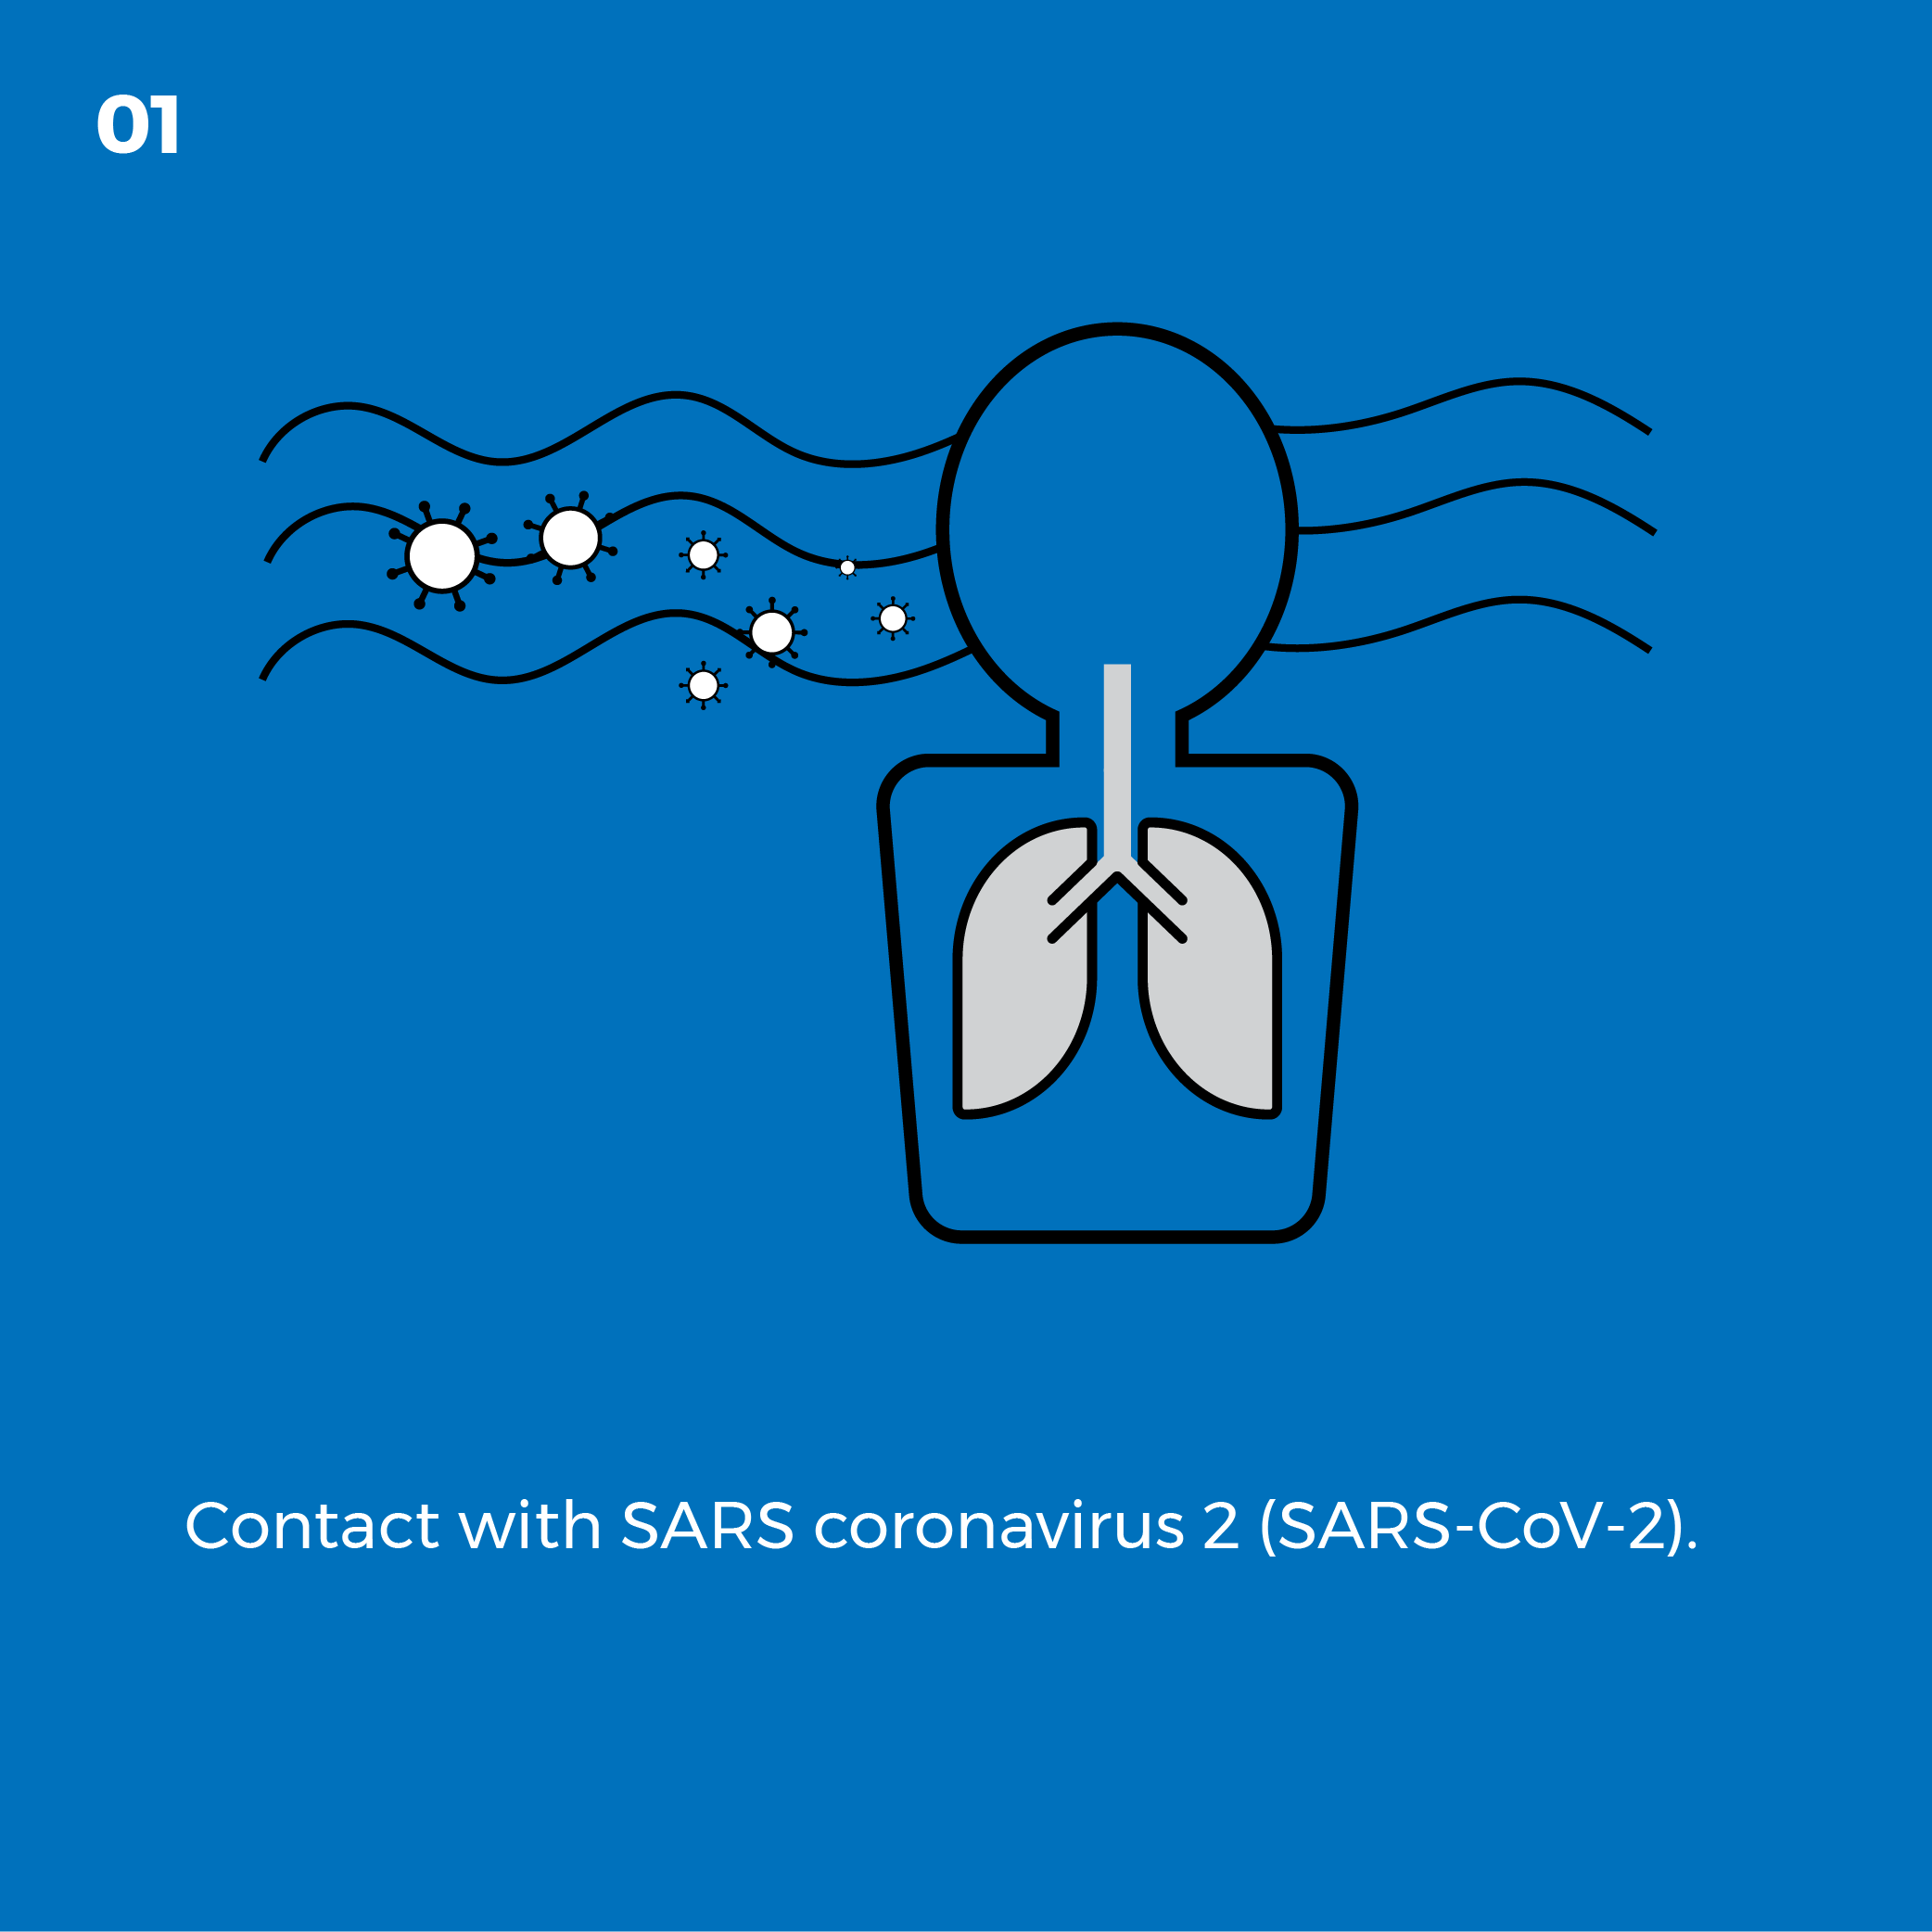 Contact with SARS coronavirus 2 (SARS-CoV-2)